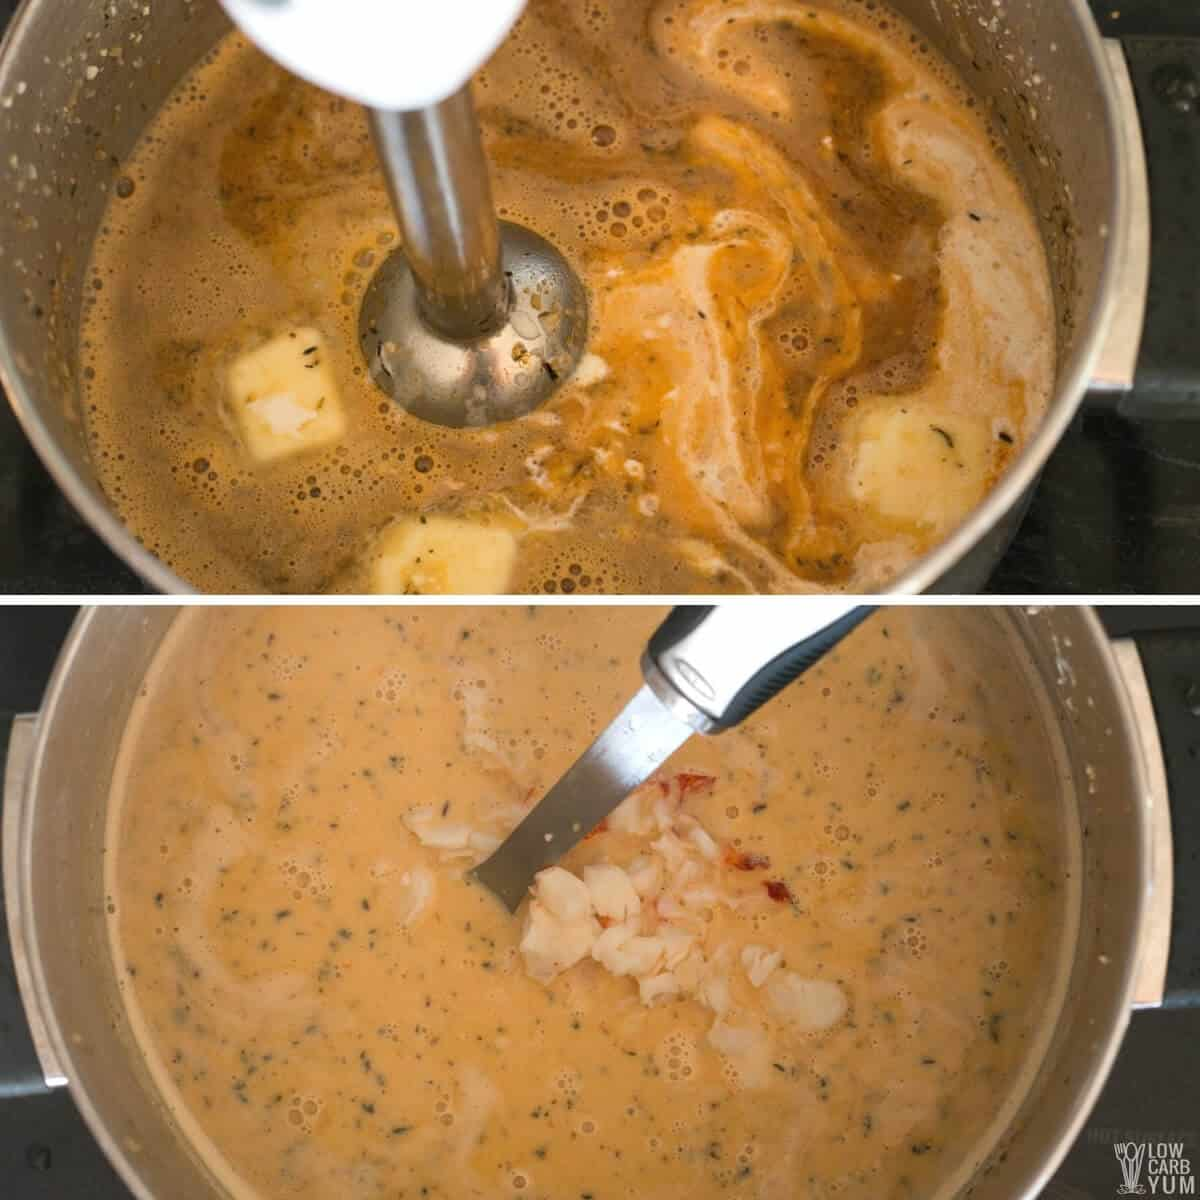 using immersion blender to puree soup before adding lobster meat